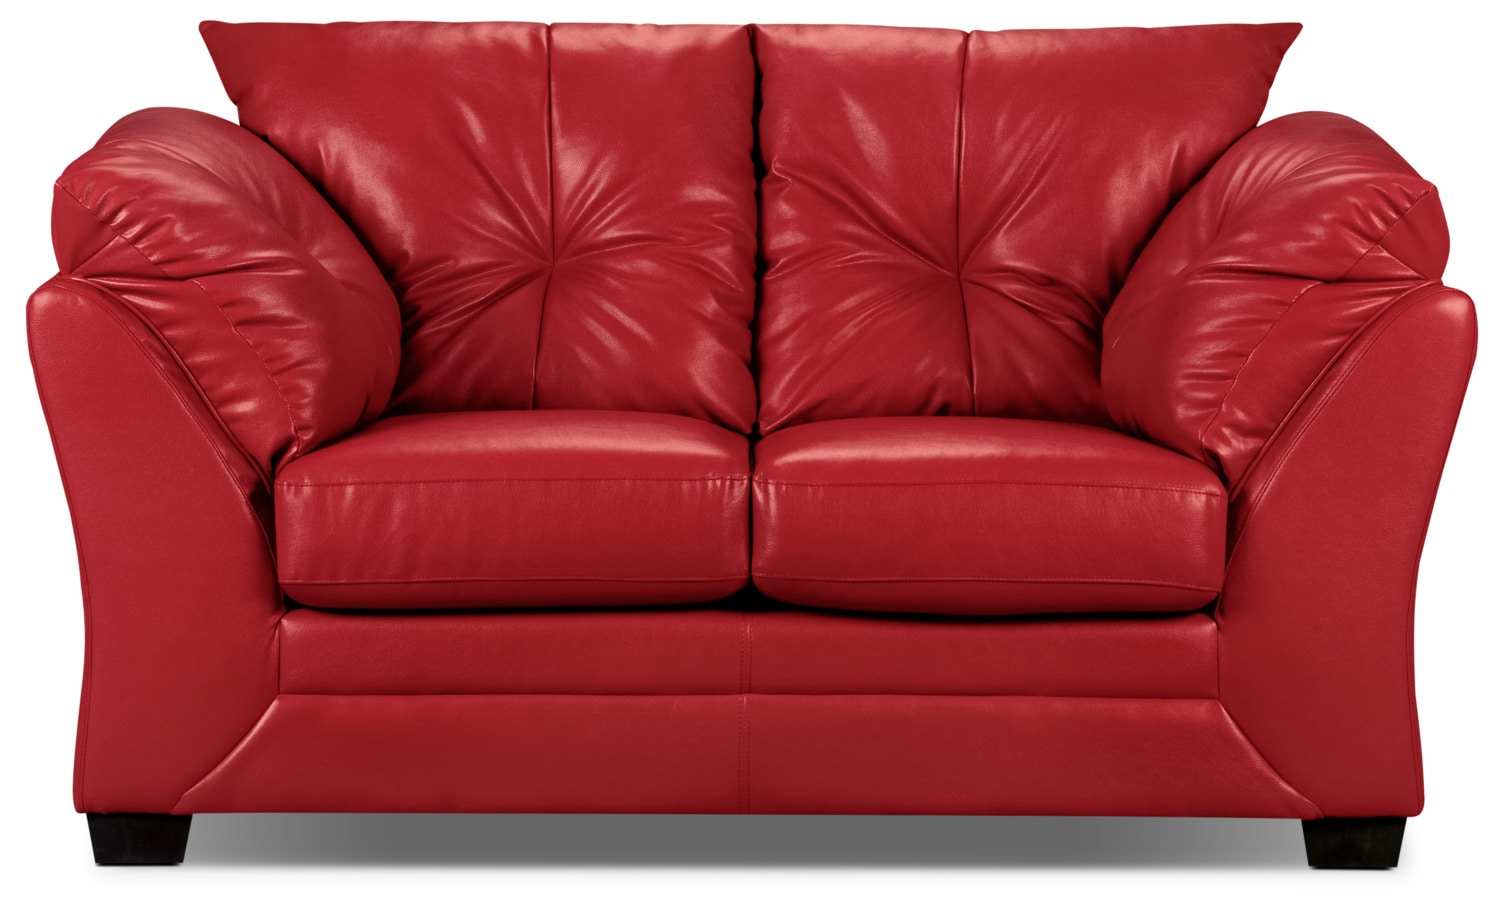 Living Room Furniture - Mitcham Red Loveseat